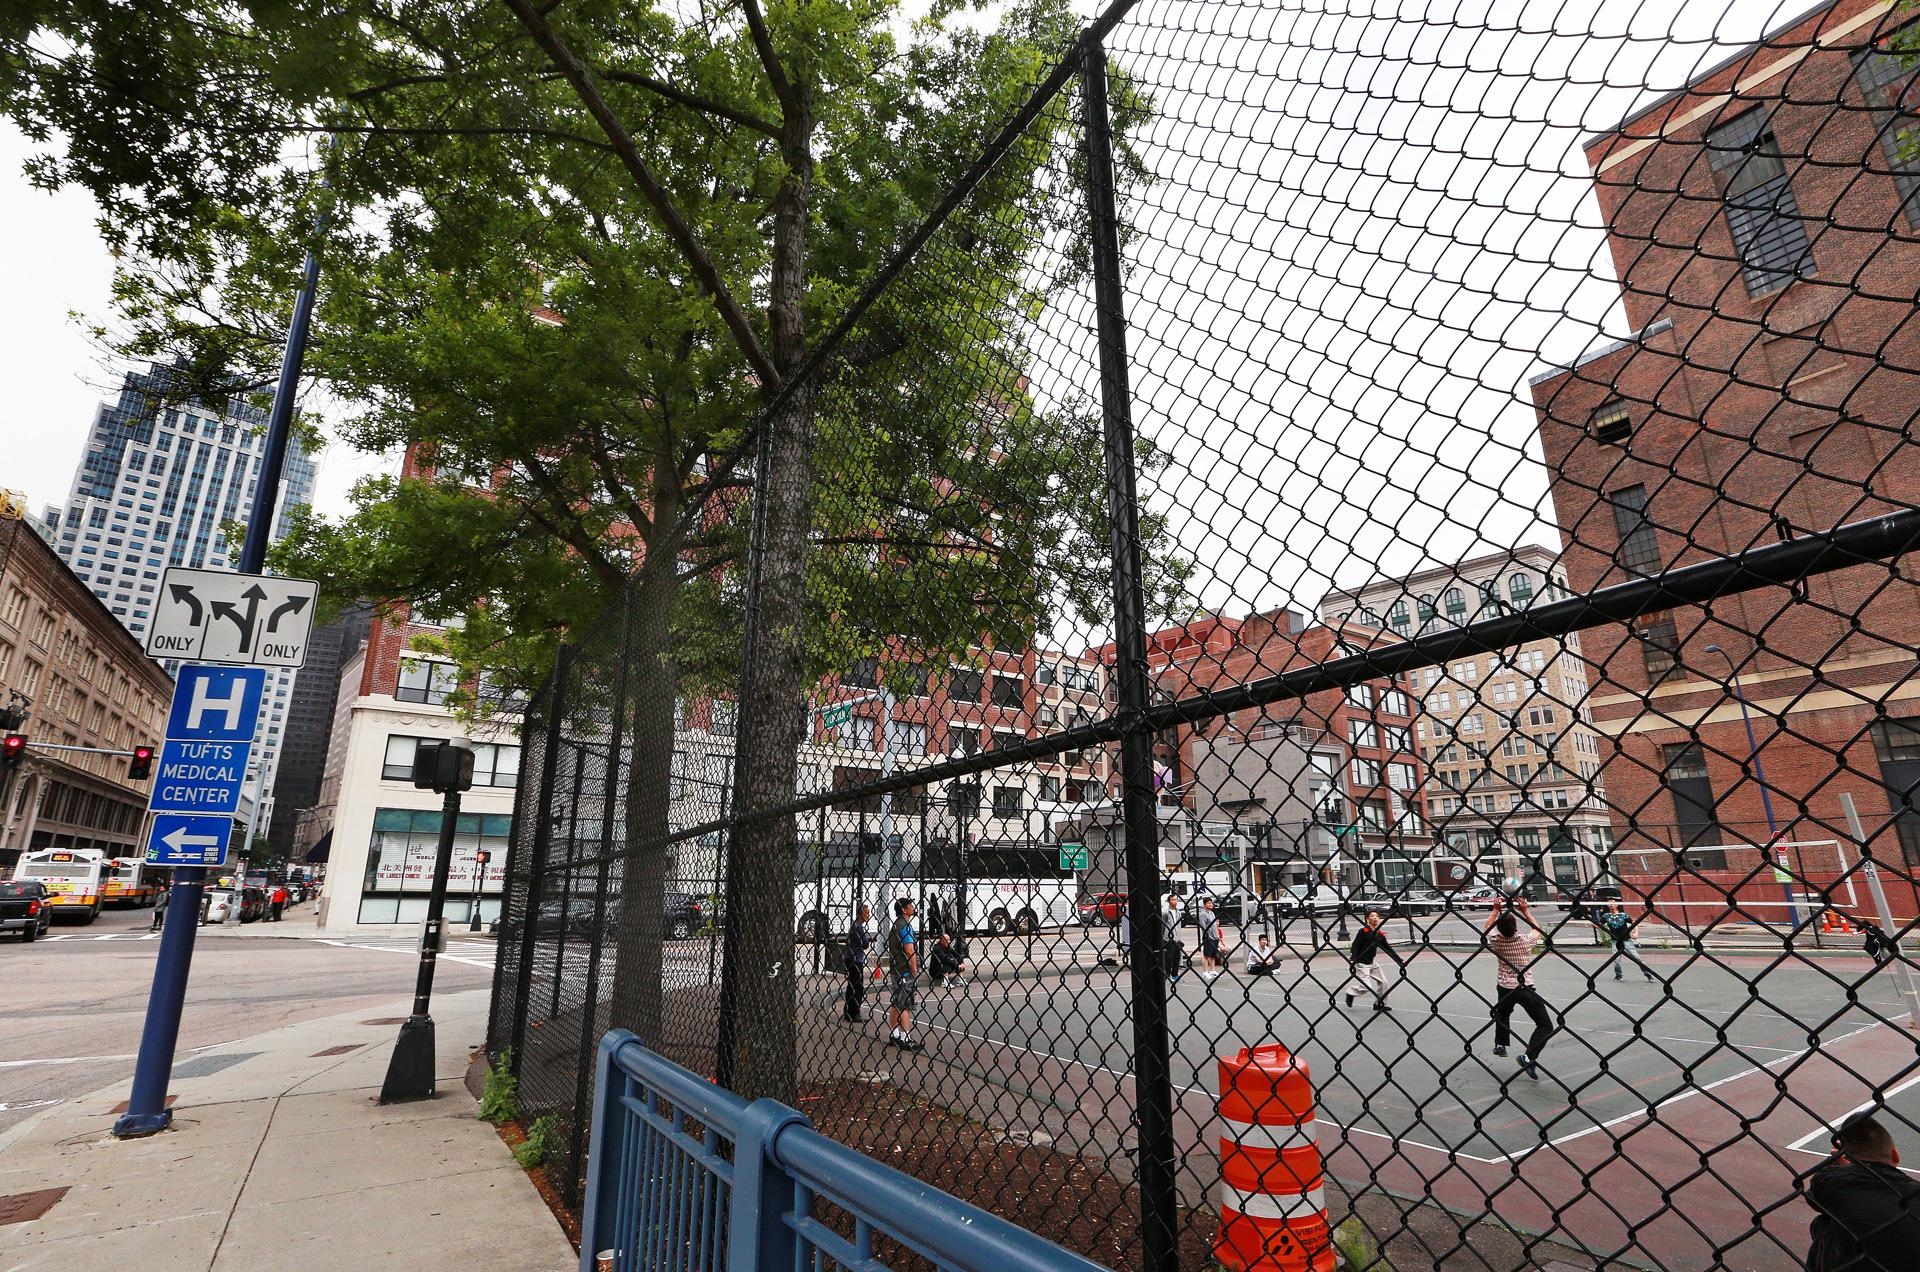 Generations of volleyball players have honed their skills at Reggie Wong Park off Kneeland Street.